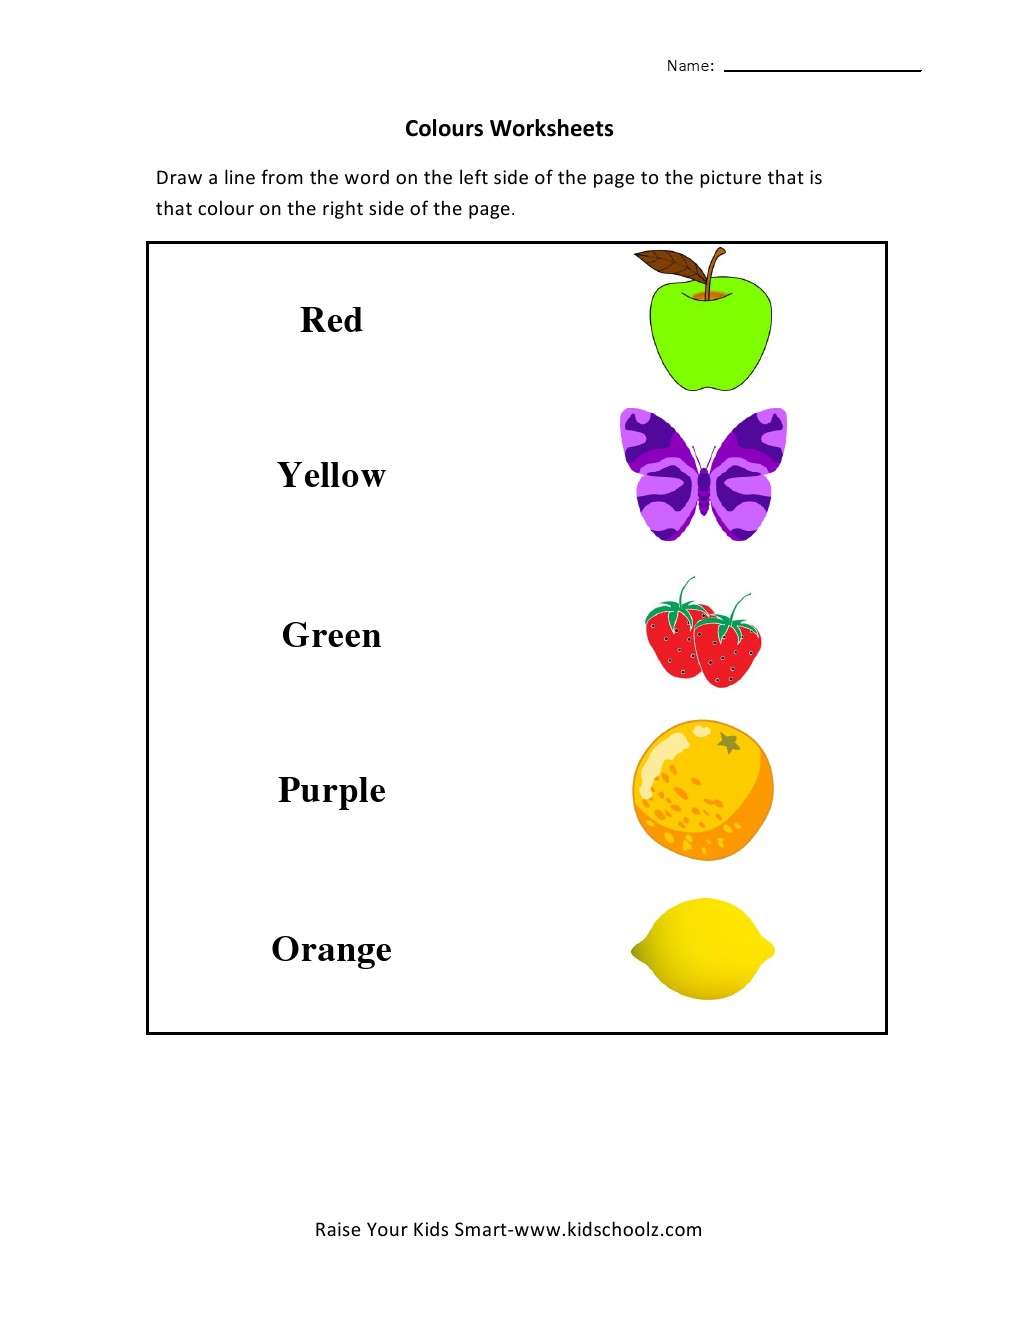 Colours Matching Worksheet - KidschoolzKidschoolz worksheets, printable worksheets, alphabet worksheets, worksheets for teachers, and multiplication Lkg Worksheets 1320 x 1020